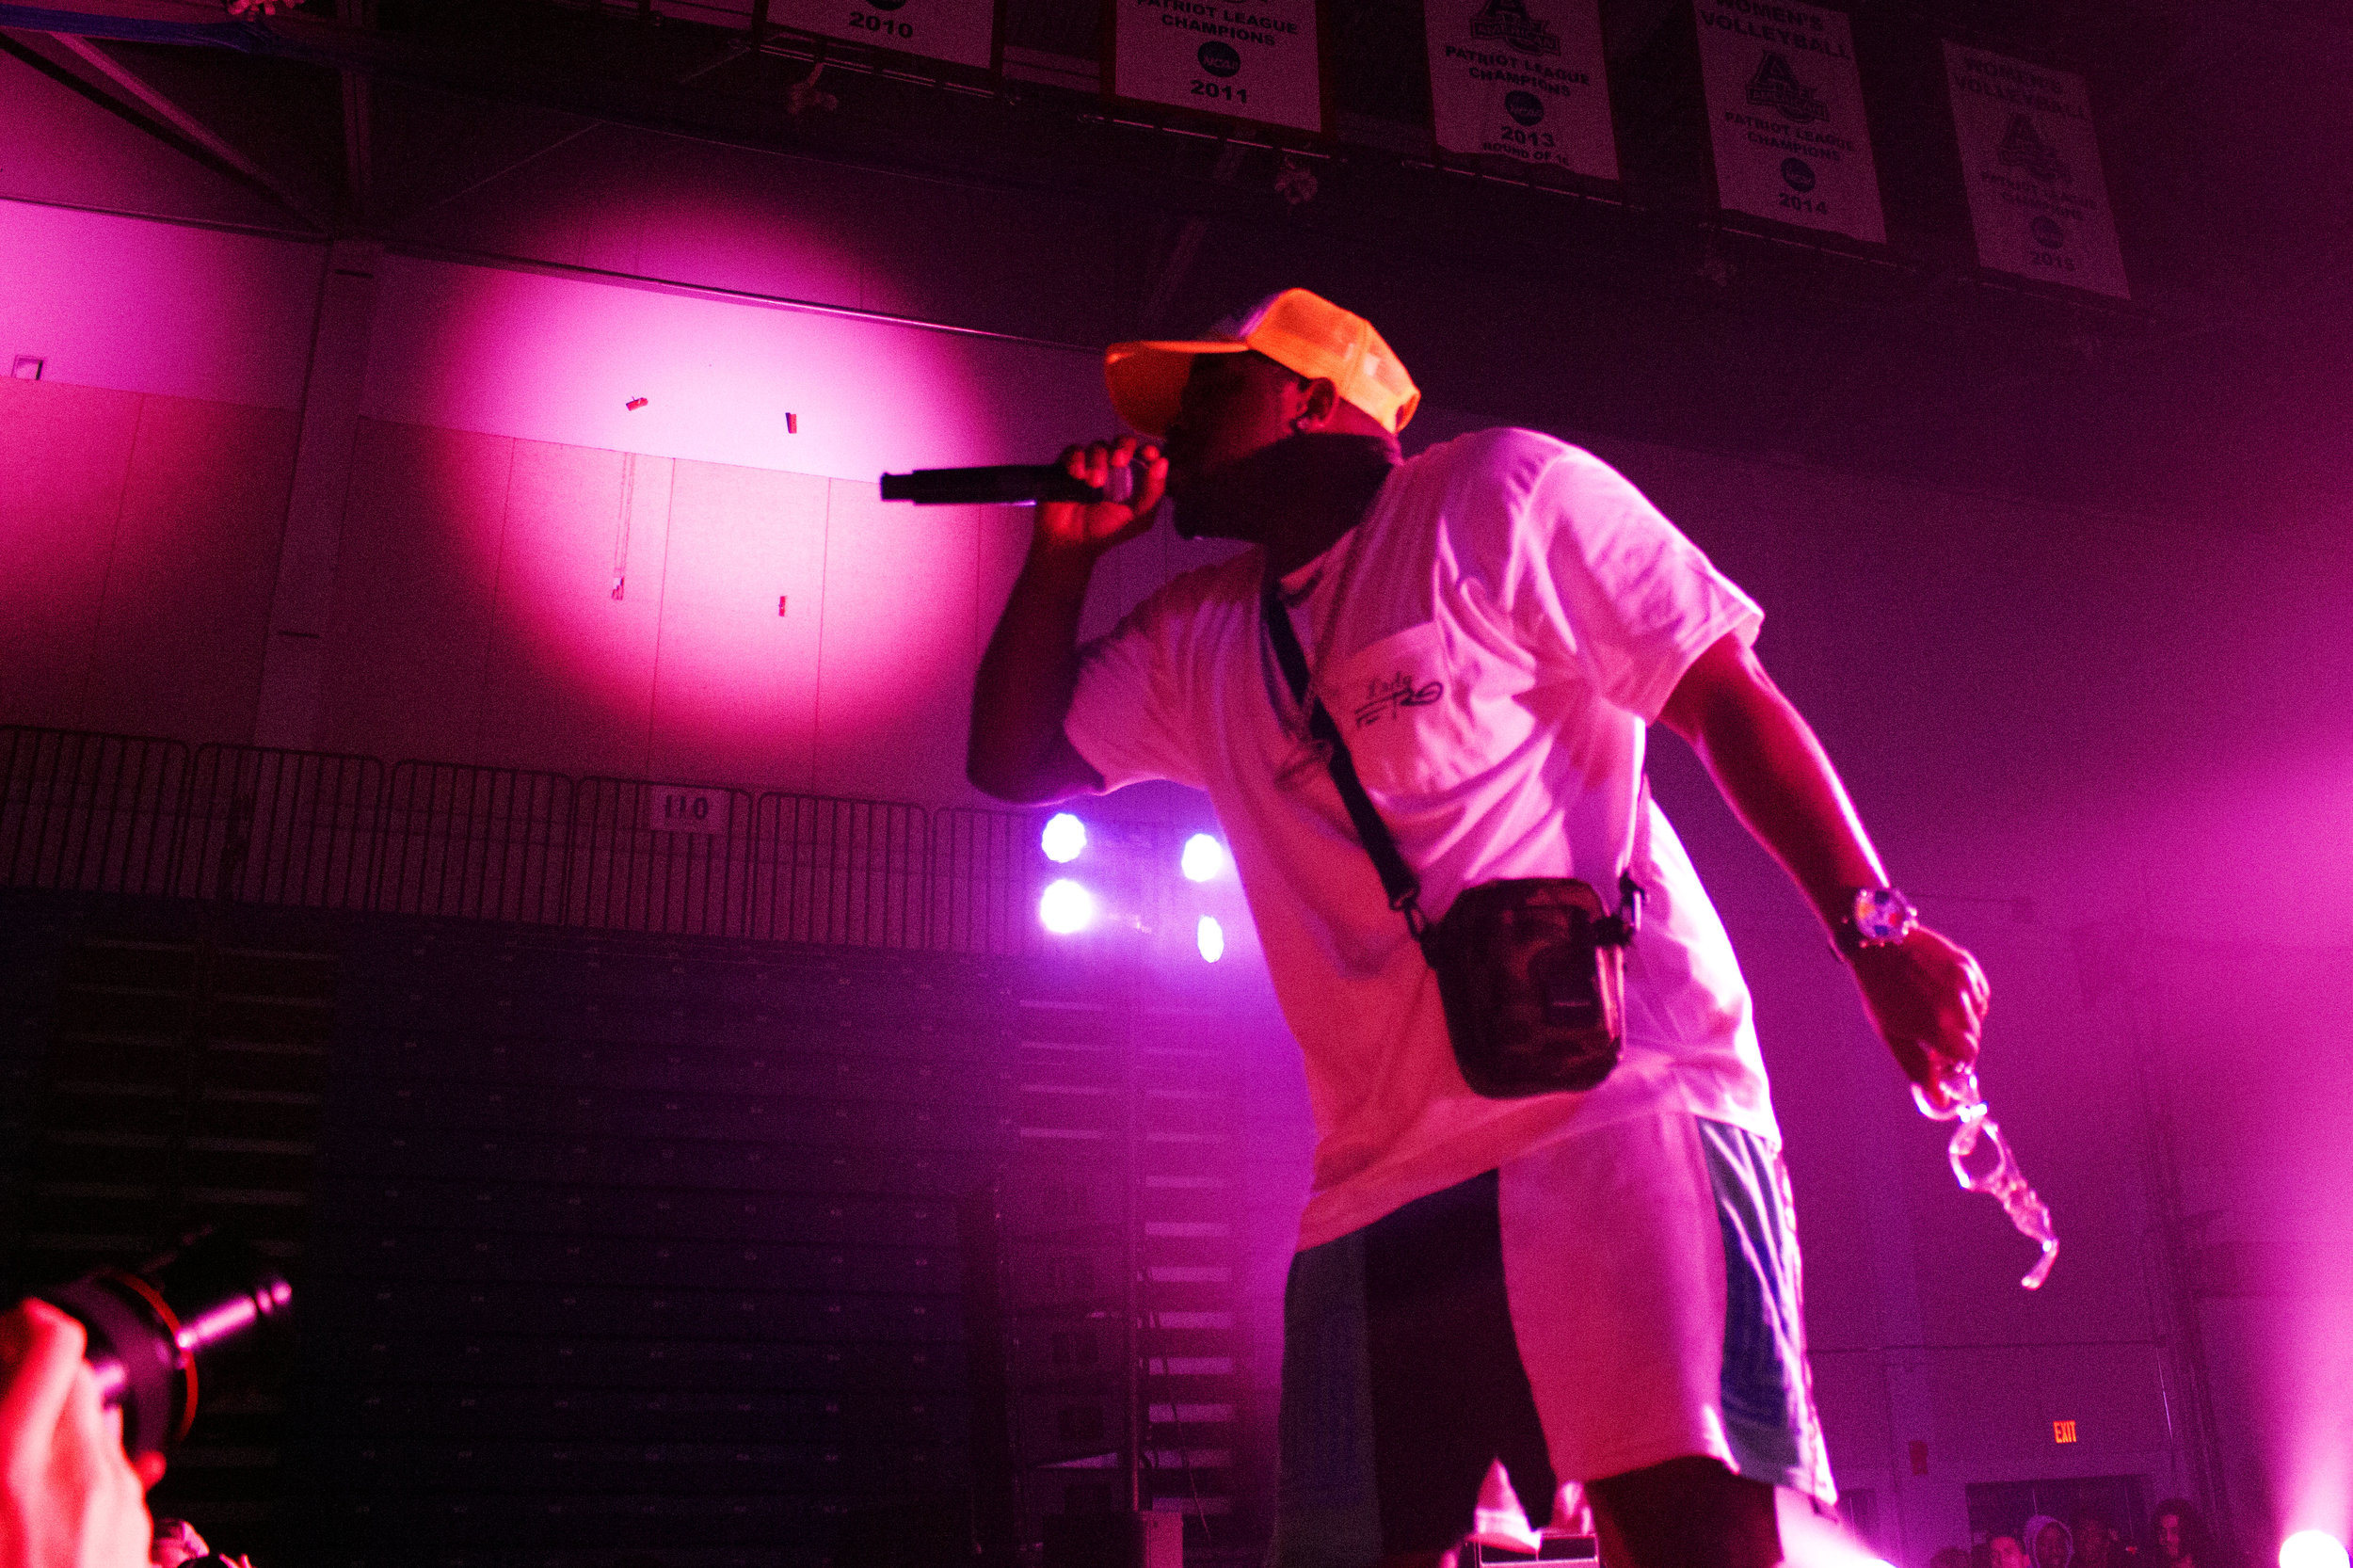 A$ap ferg - After releasing his latest mixtape Still Striving, A$AP Ferg performed in D.C. a day after dropping Cozy Tapes Vol. II with his ASAP Mob family.